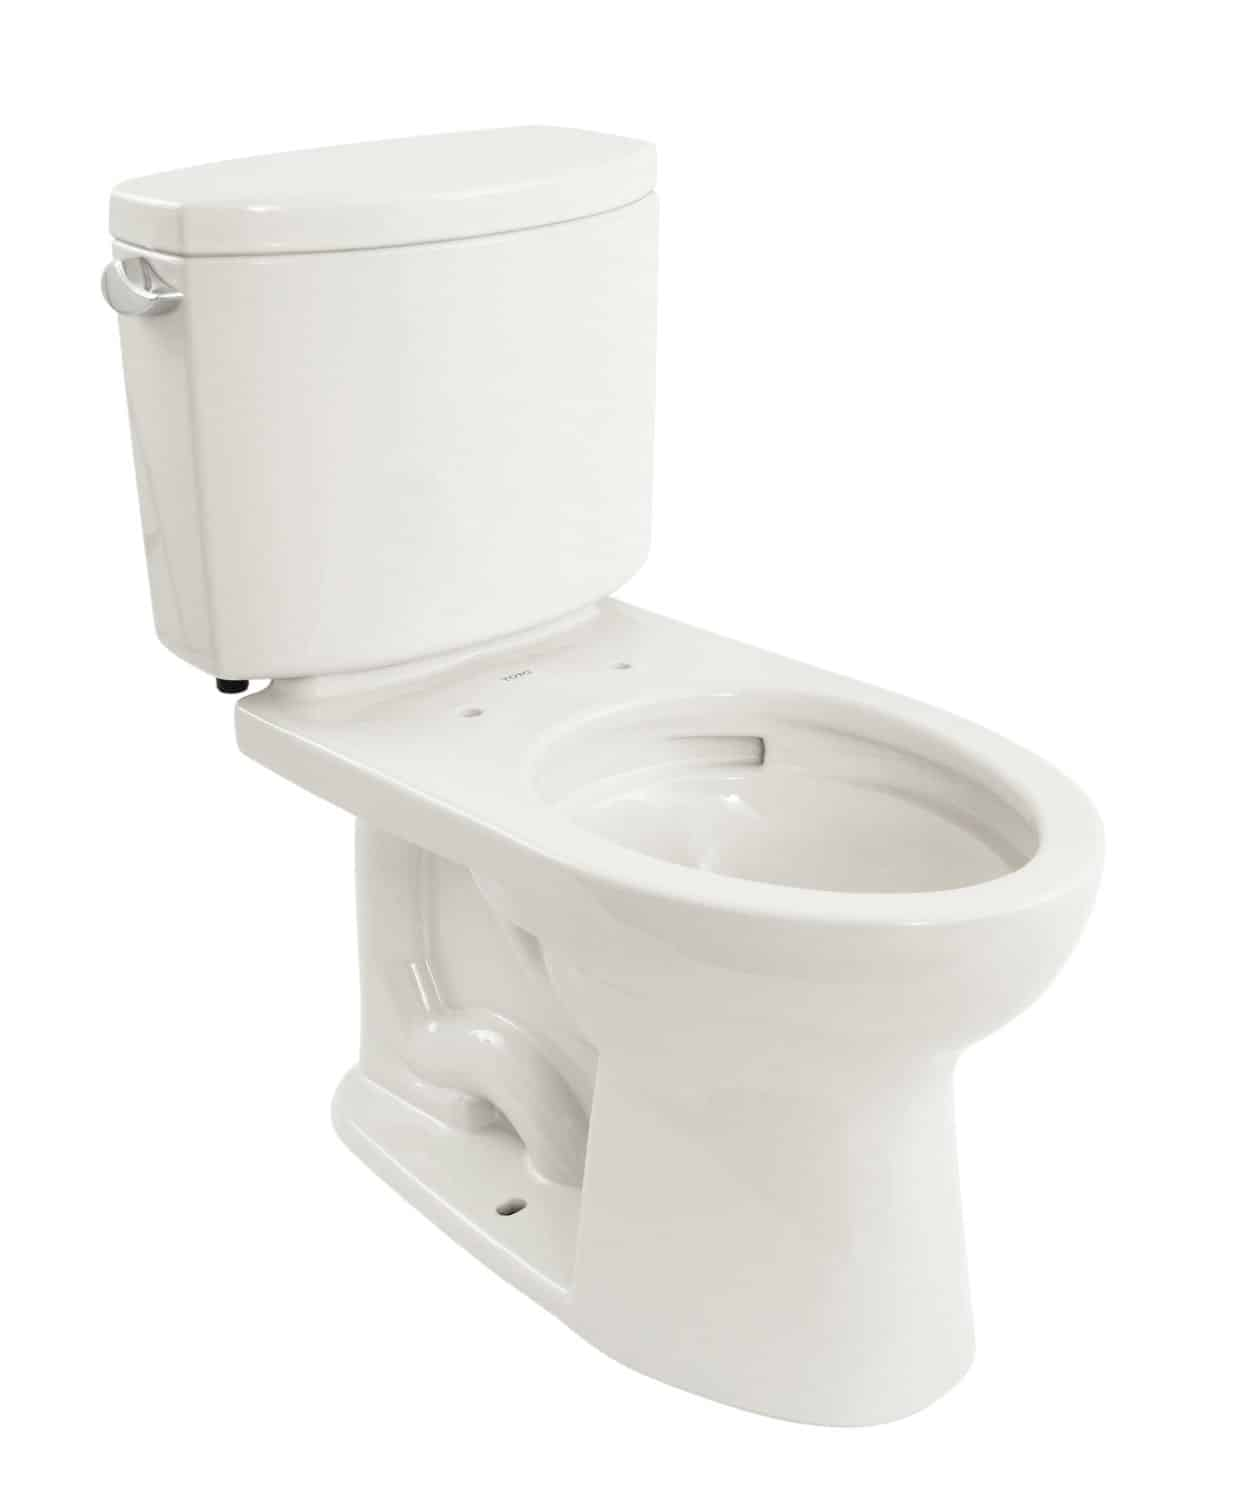 How to Choose the Best Toto Toilet - A Guideline